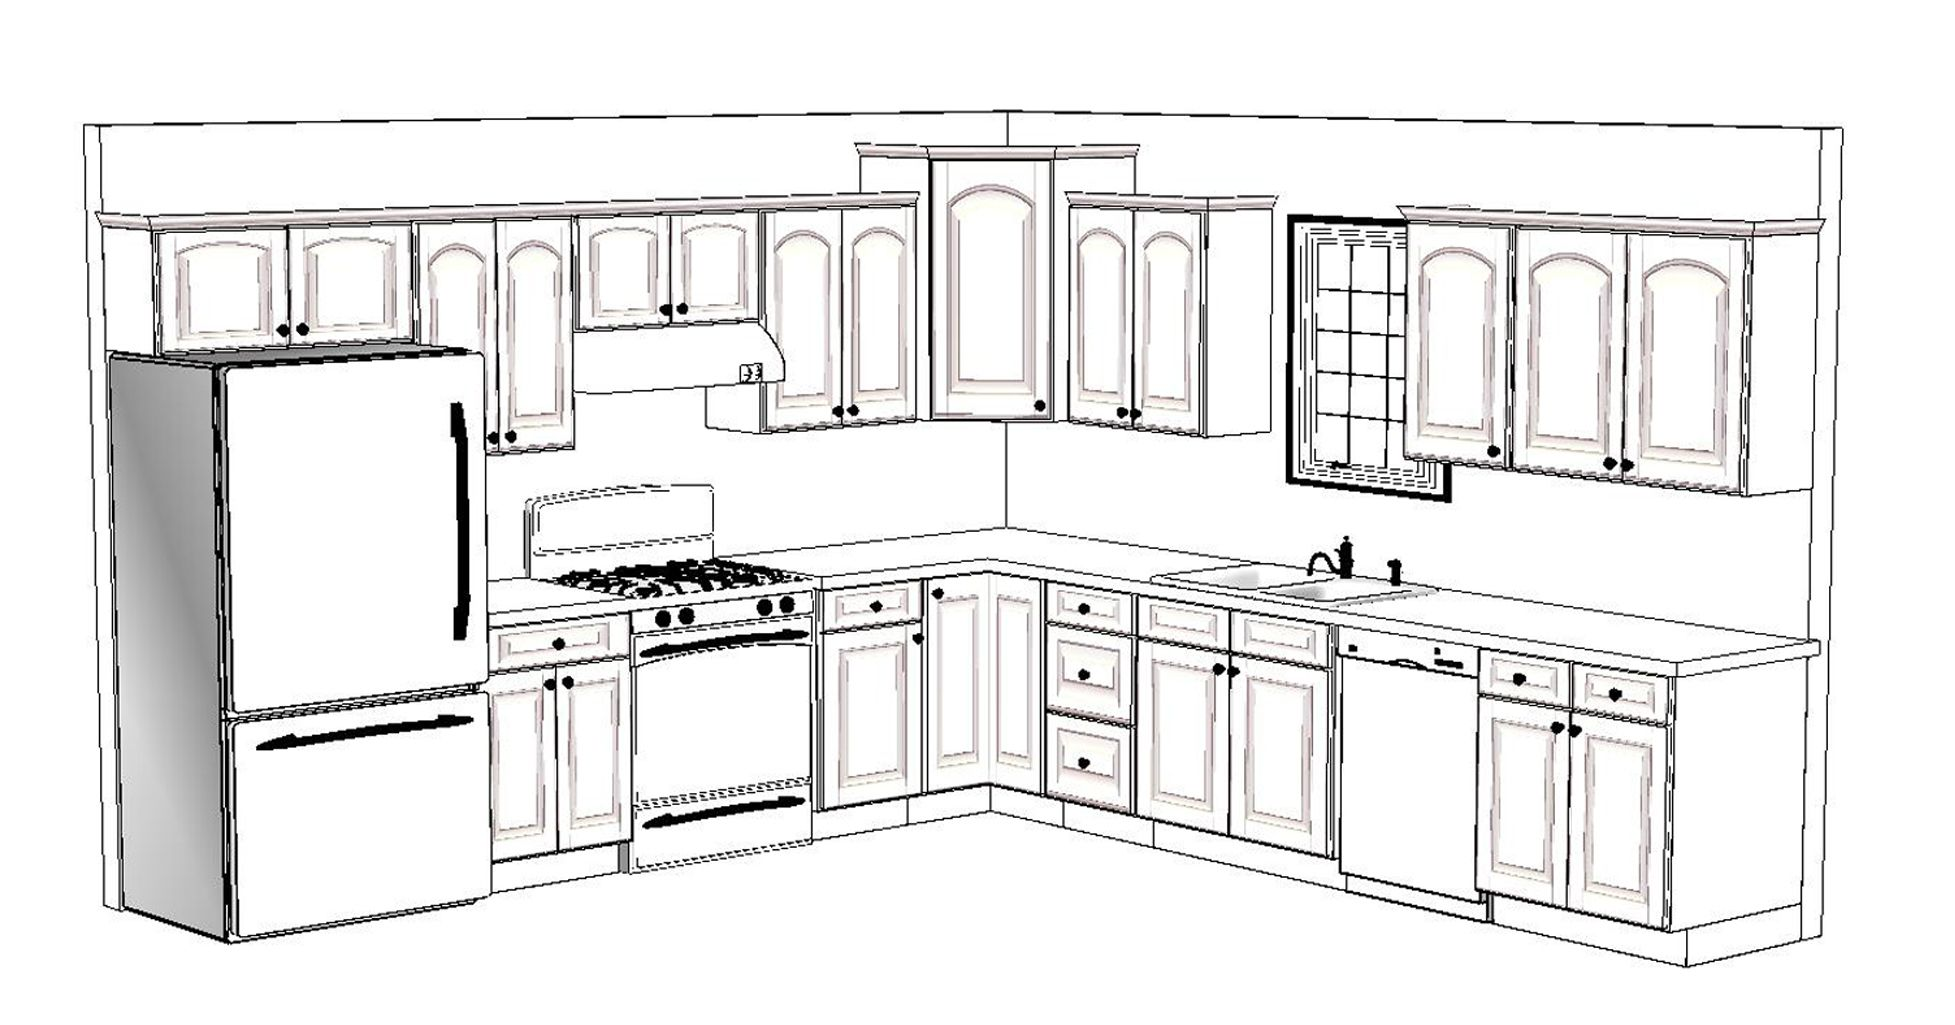 Kitchen Design Layout Images 10 X 12 Kitchen Layout 4 12x12 Kitchen Design Layouts